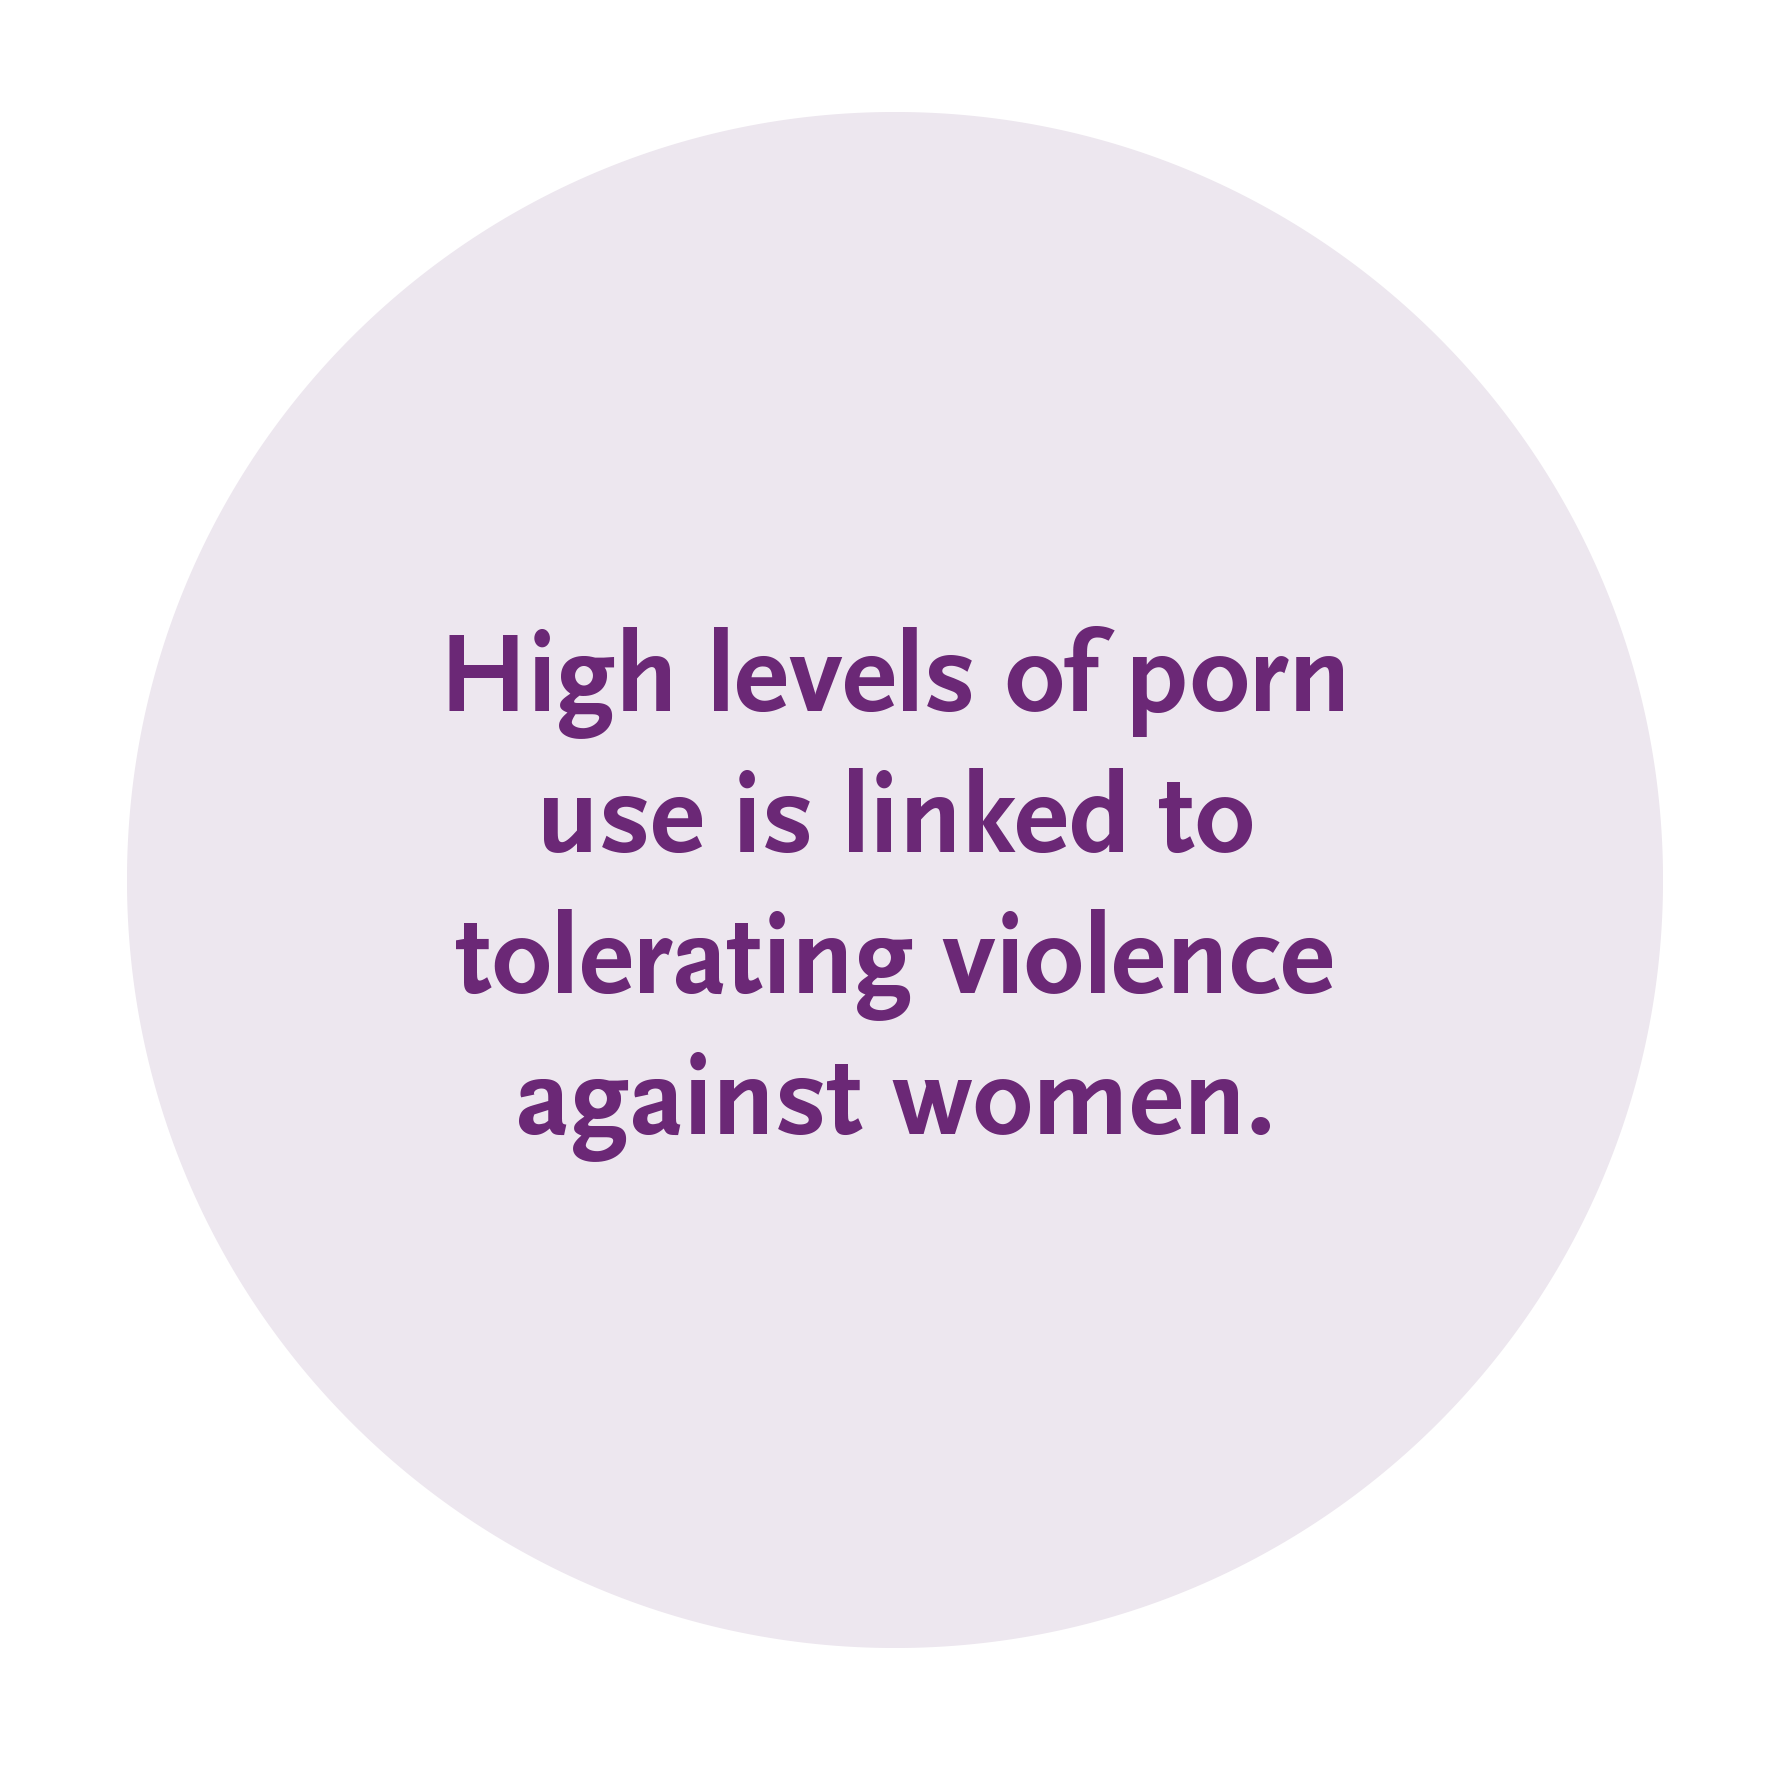 High leves of porn use have been linked to tolerating violence against women